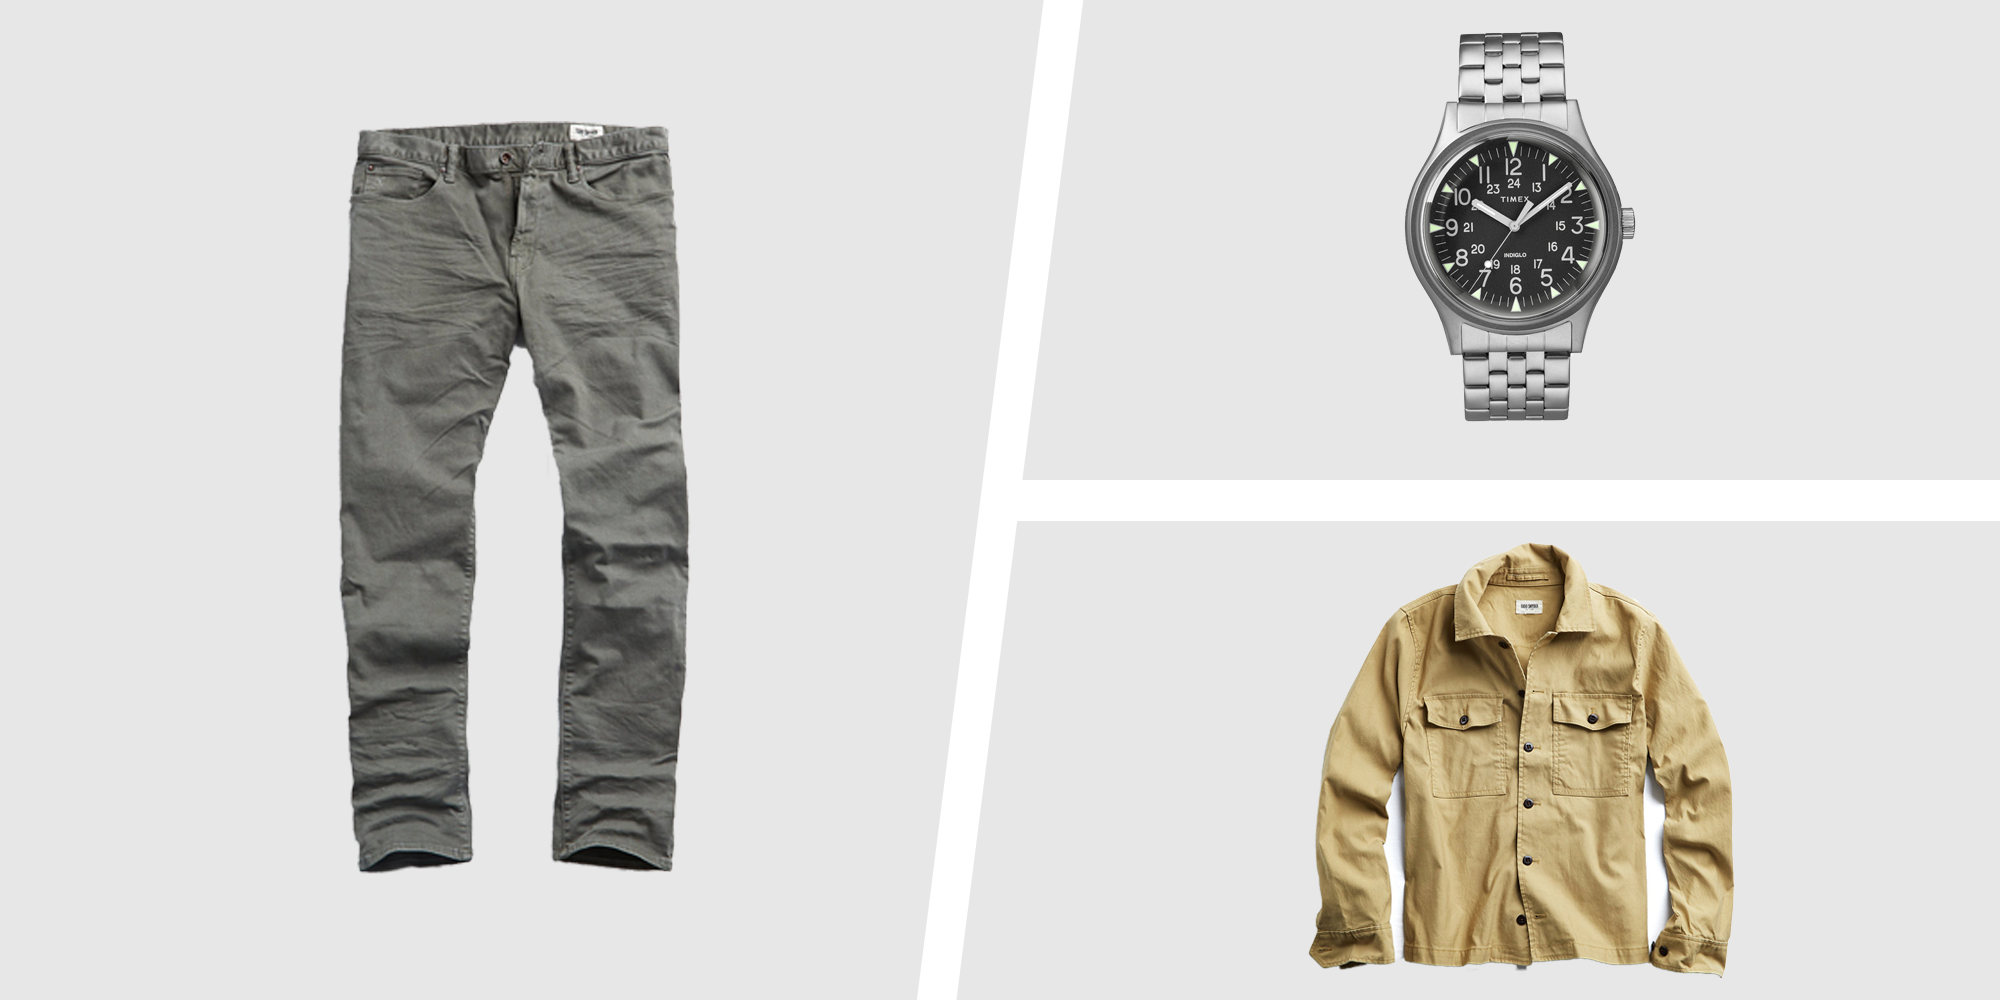 Todd Snyder Is Having a Massive End of Summer Sale on Menswear Essentials Right Now